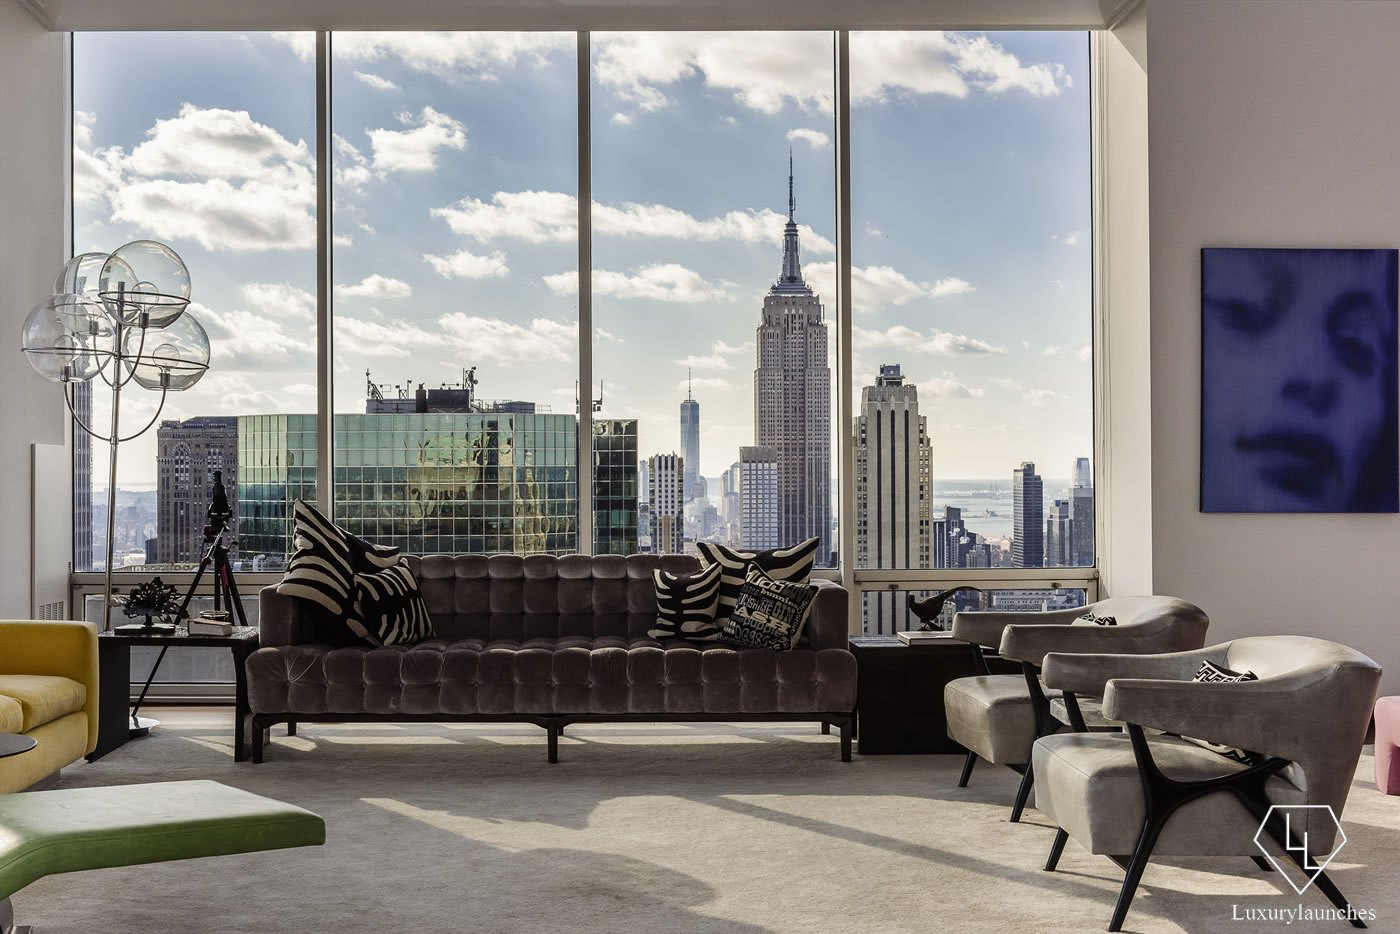 gucci u0026 39 s  38 million penthouse in manhattan is up for sale